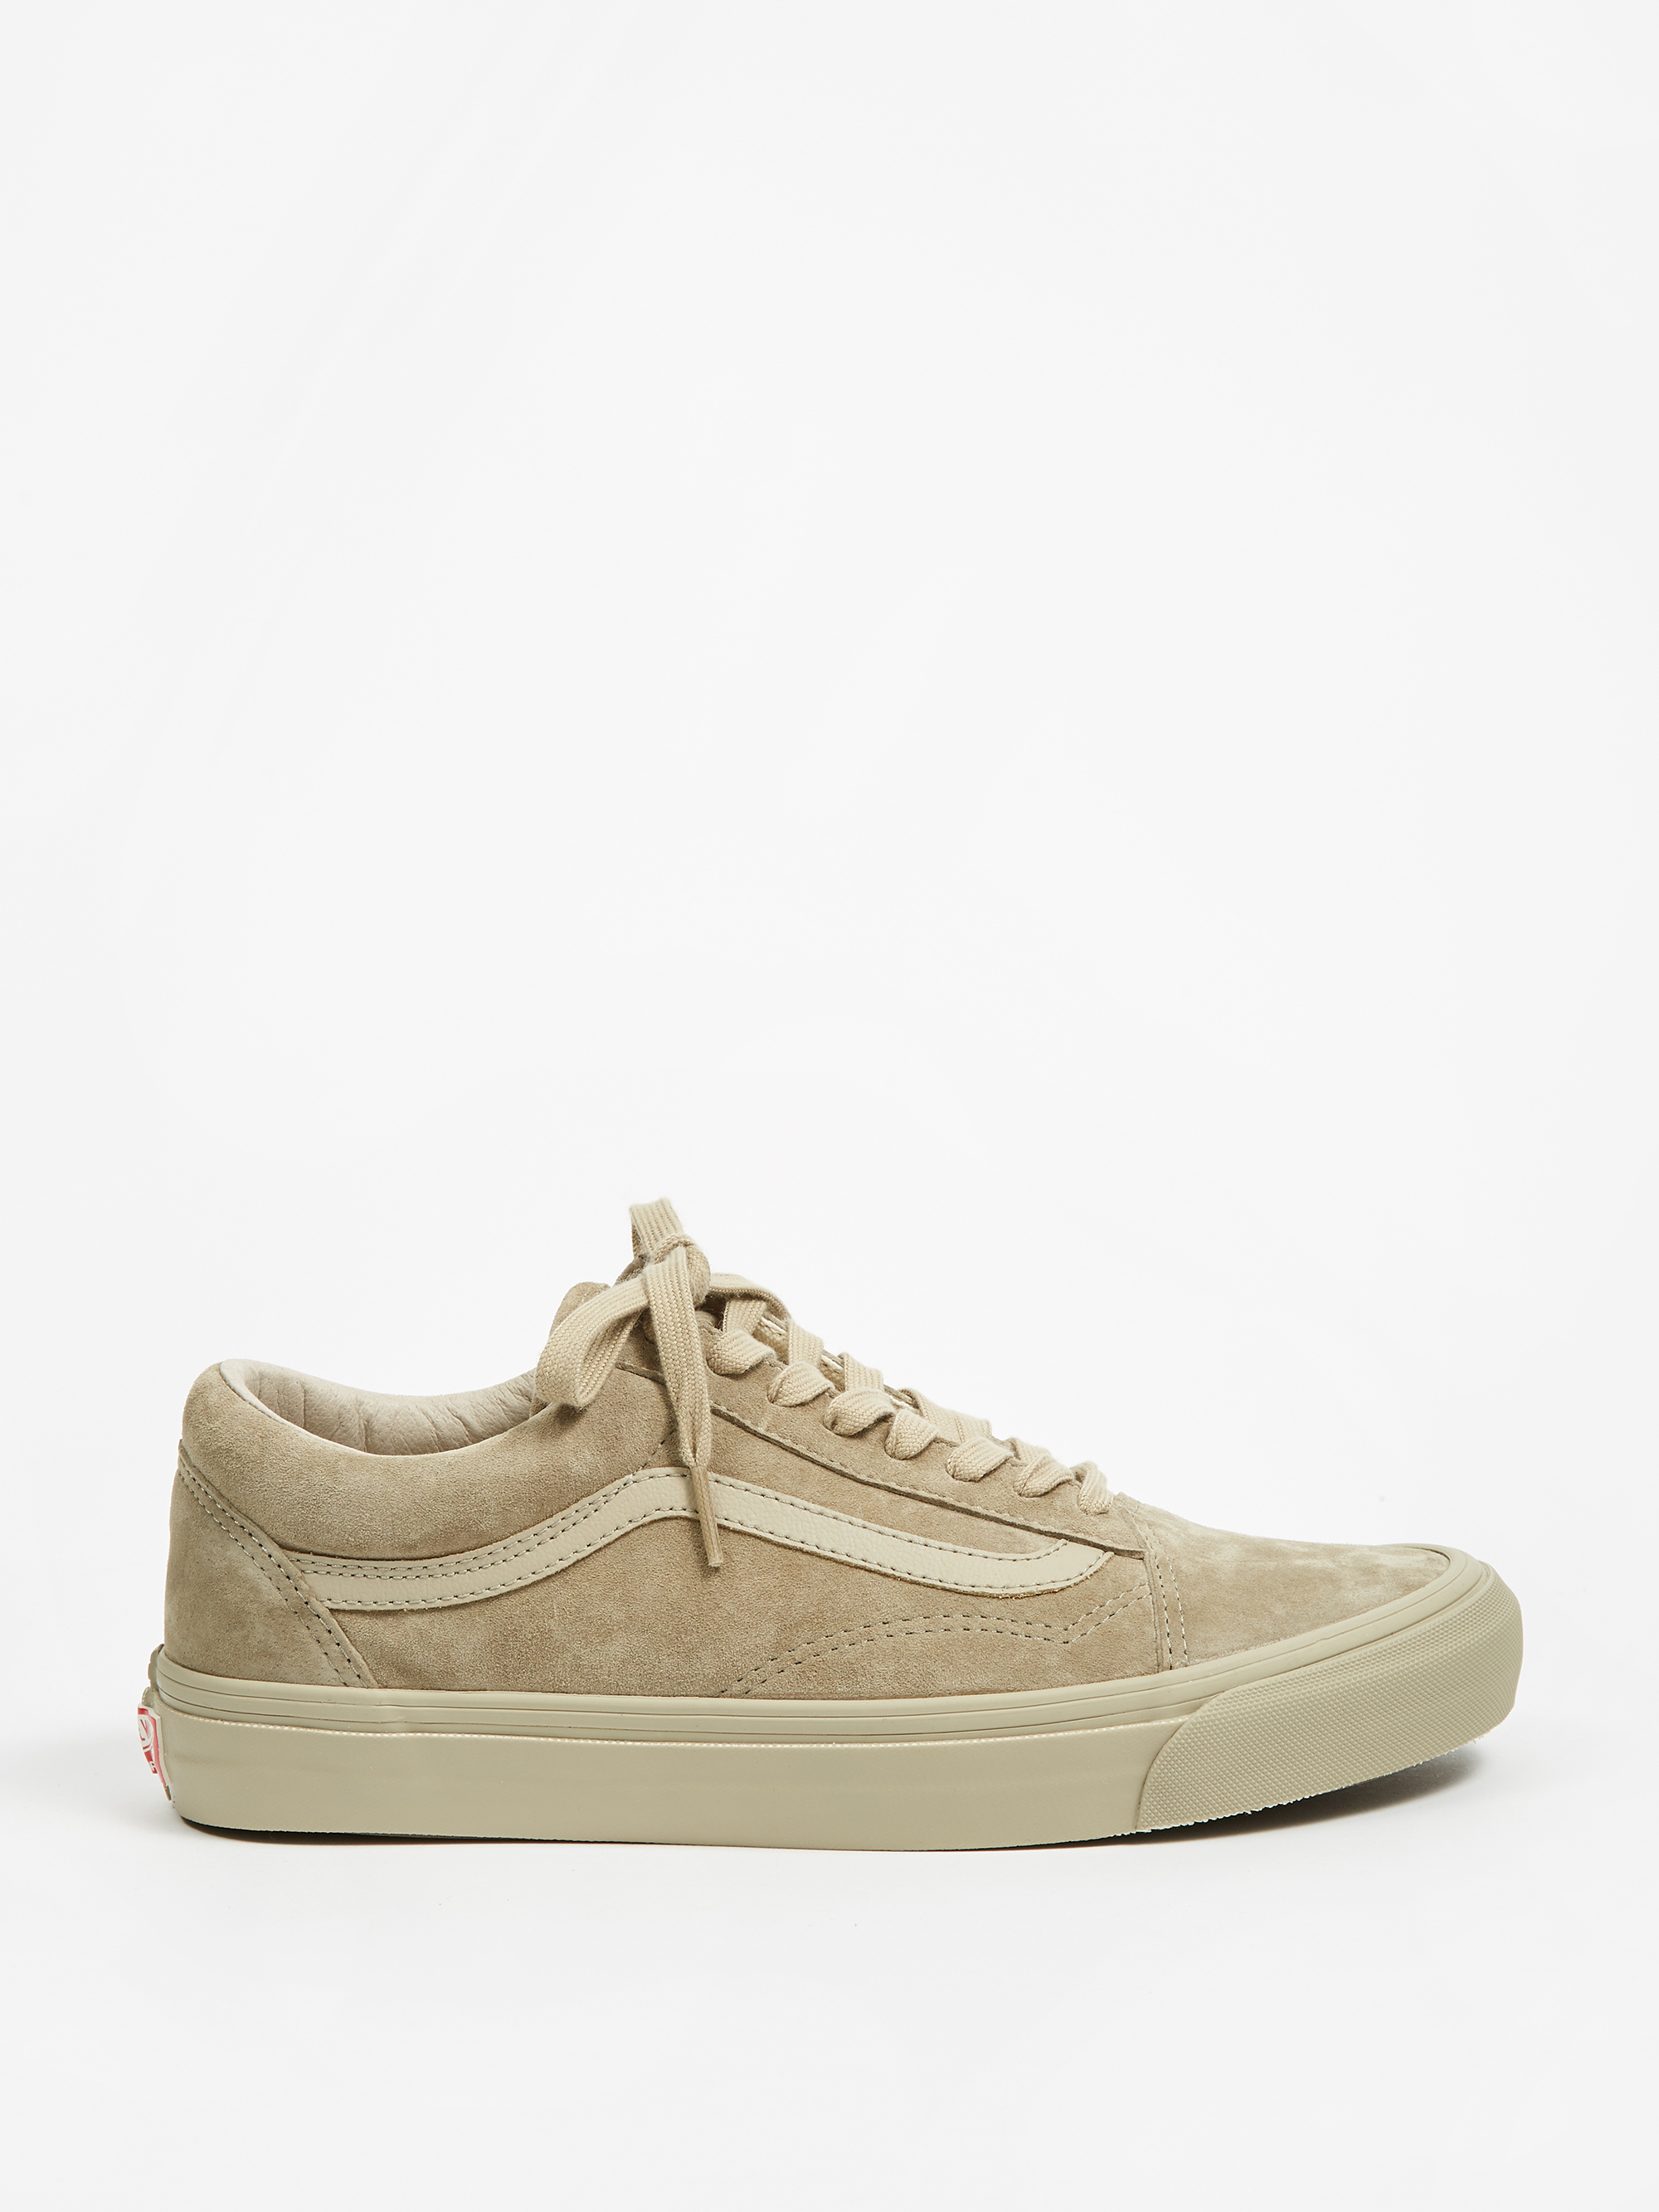 97eb5fb7d8d9bf Vans Vault OG Old Skool LX - (Leather Suede) Plaze Taupe